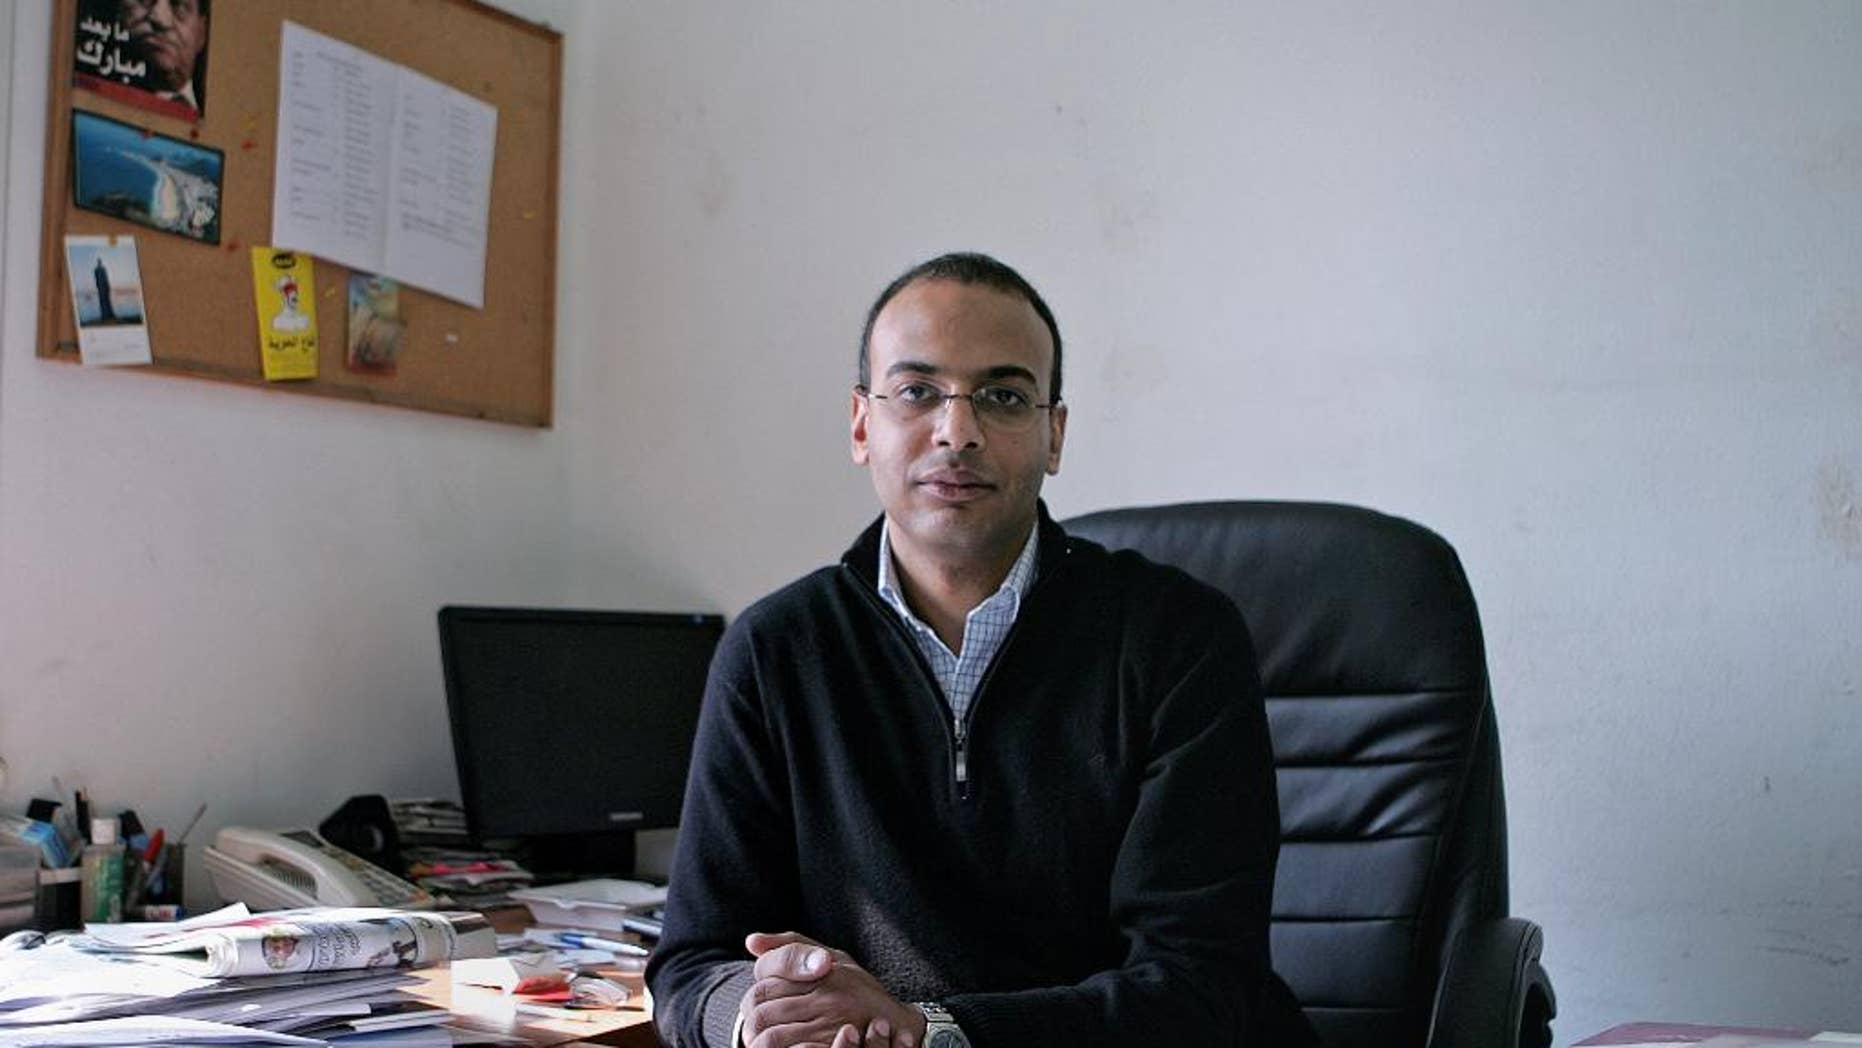 FILE -- This Dec. 7, 2011 photo, shows Hossam Bahgat in his office at the Egyptian Initiative for Personal Rights in Garden City, Cairo, Egypt.  An Egyptian court on Saturday, Sept. 17, 2016 upheld a decision to freeze the assets of several prominent human rights campaigners in the latest blow to a once-vibrant activist community that has been largely silenced by a government crackdown. The five activists named in the court ruling include Gamal Eid and Bahey eldin Hassan, who head two well-known human rights organizations, as well as investigative reporter Hossam Bahgat, also the founder of a rights group. The other two are Mustafa el-Hassan and Abdel-Hafiz Tayel.  (Sarah Rafea via AP, File) MANDATORY CREDIT